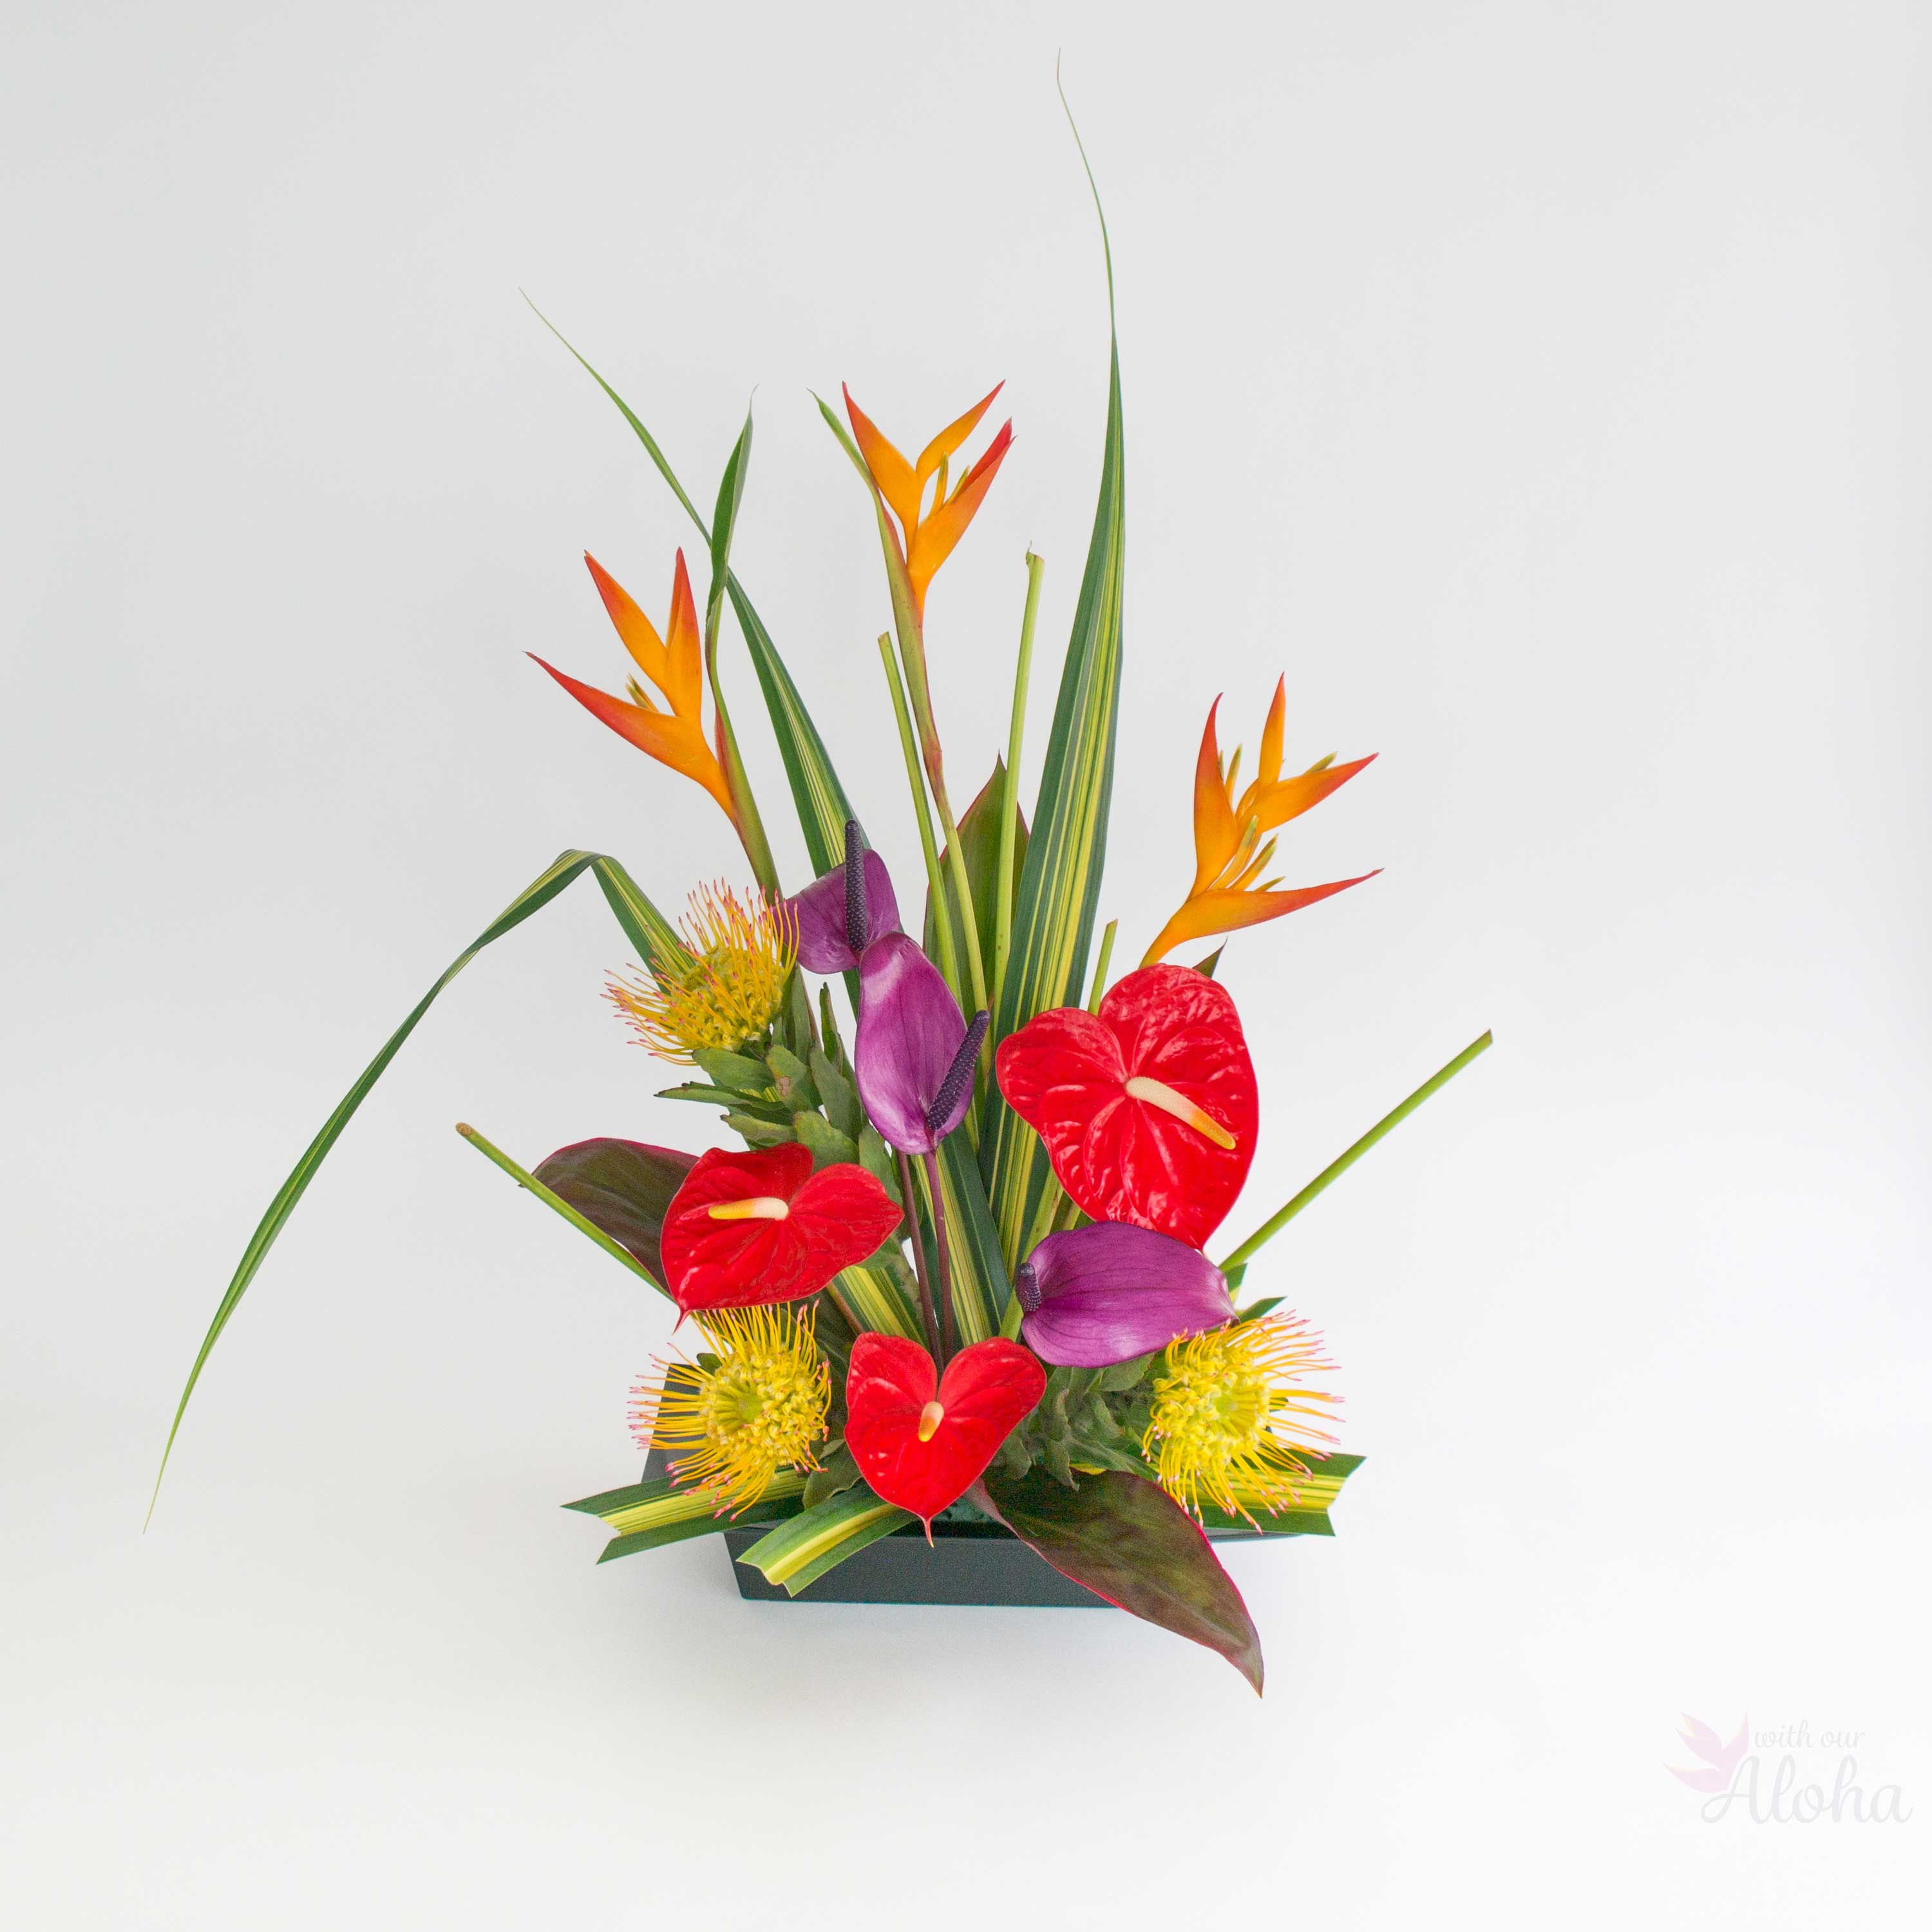 Punahele the favorite flower assortment hawaiian flowers punahele the favorite izmirmasajfo